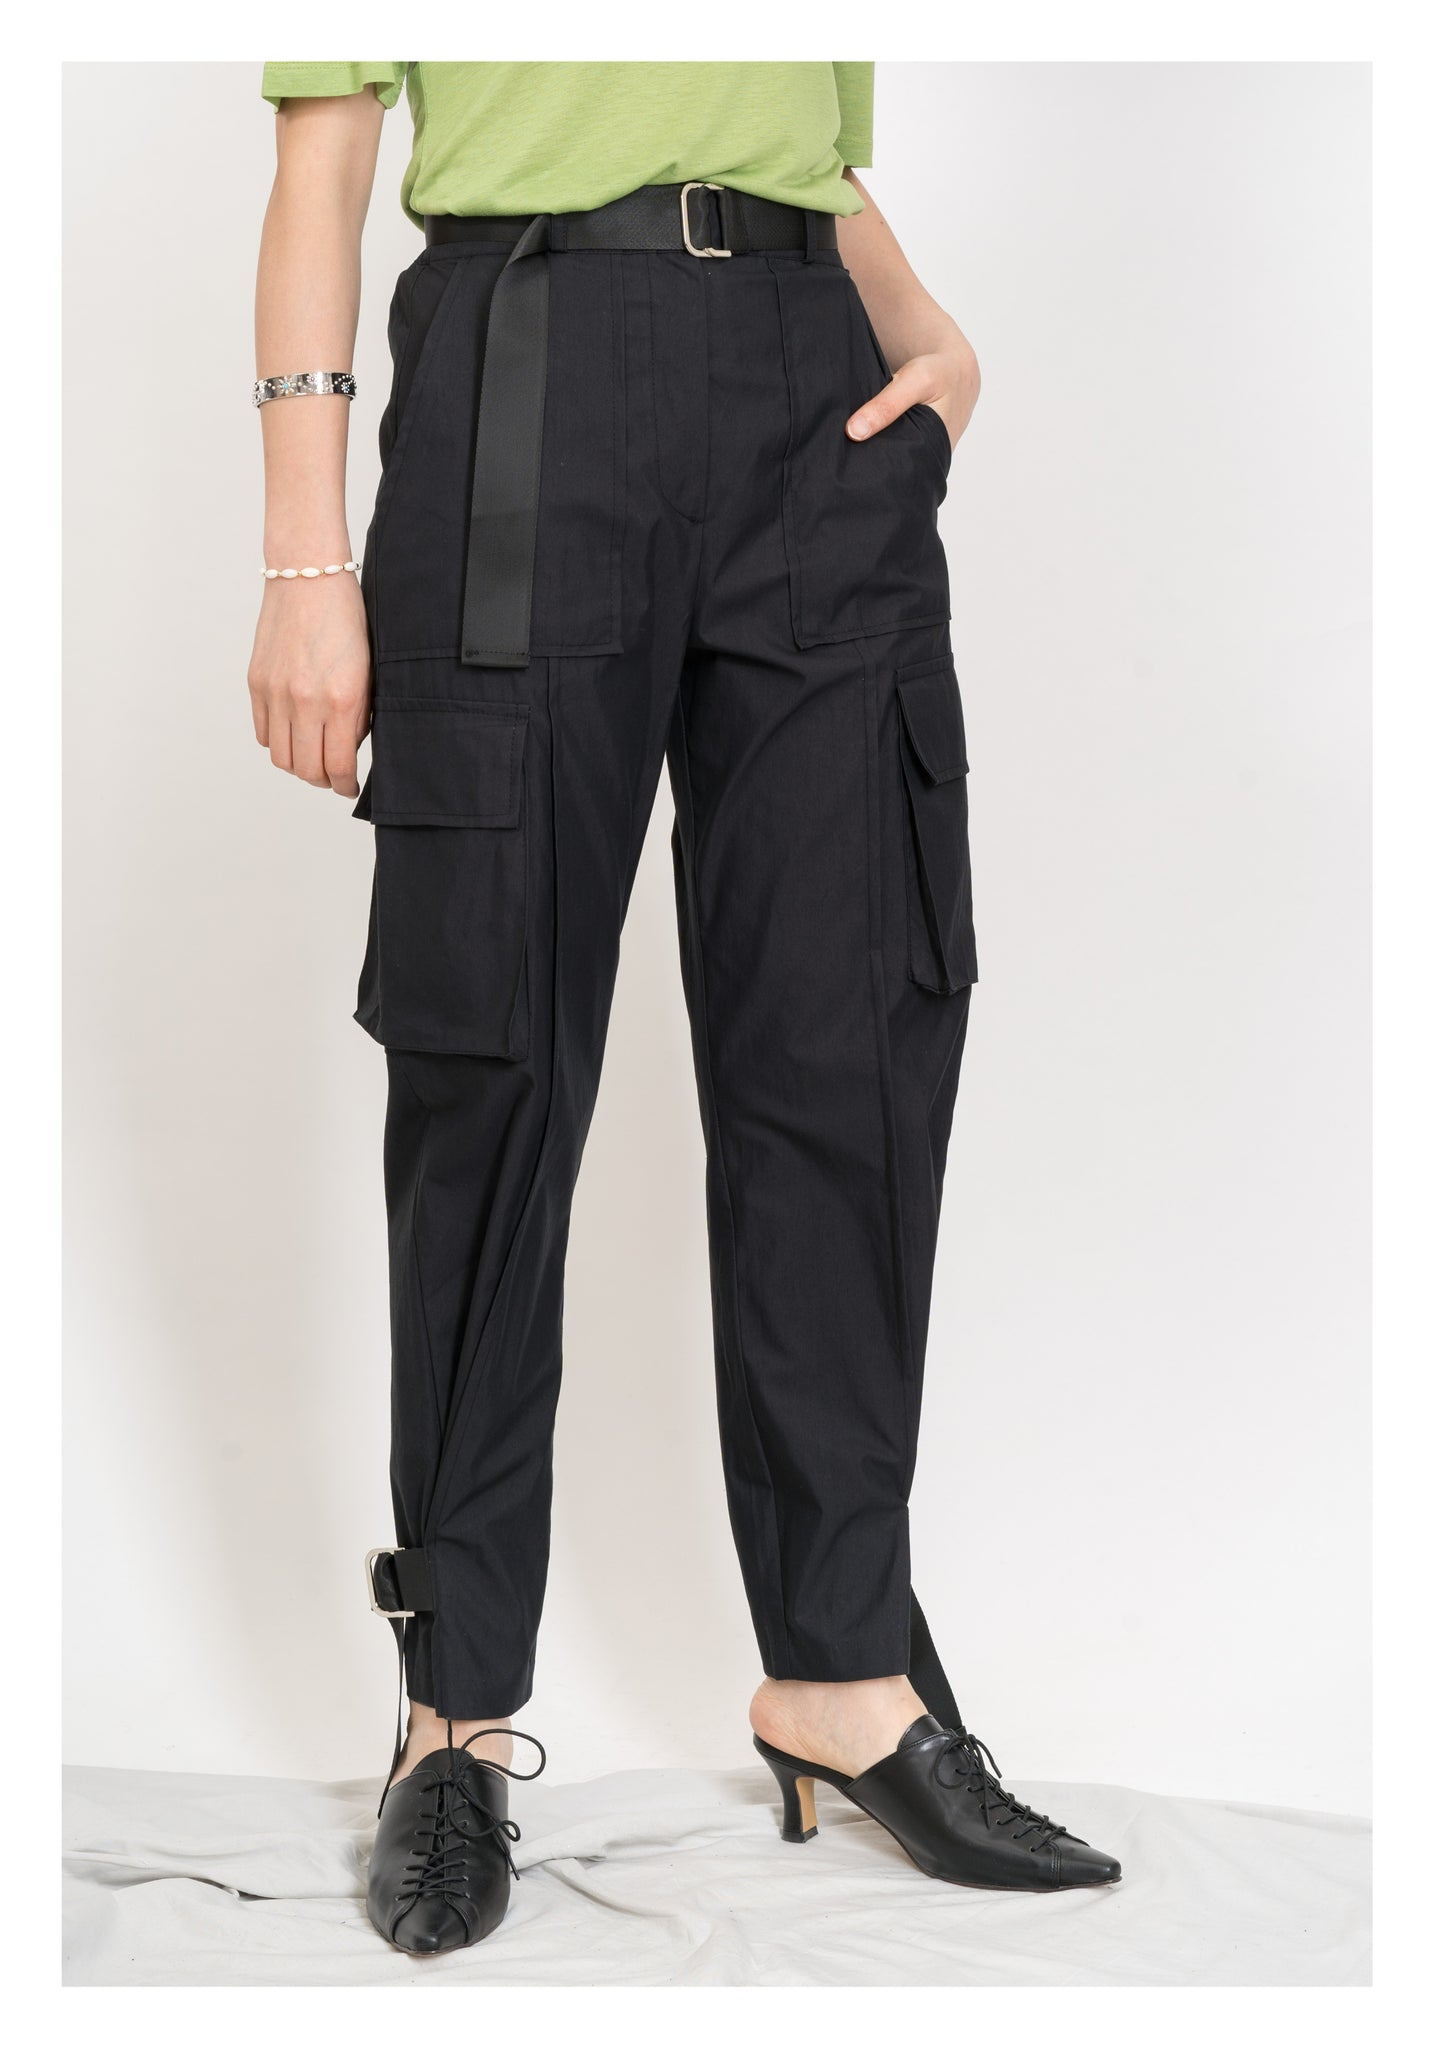 Slim Taper Tie Cargo Pants Black - whoami